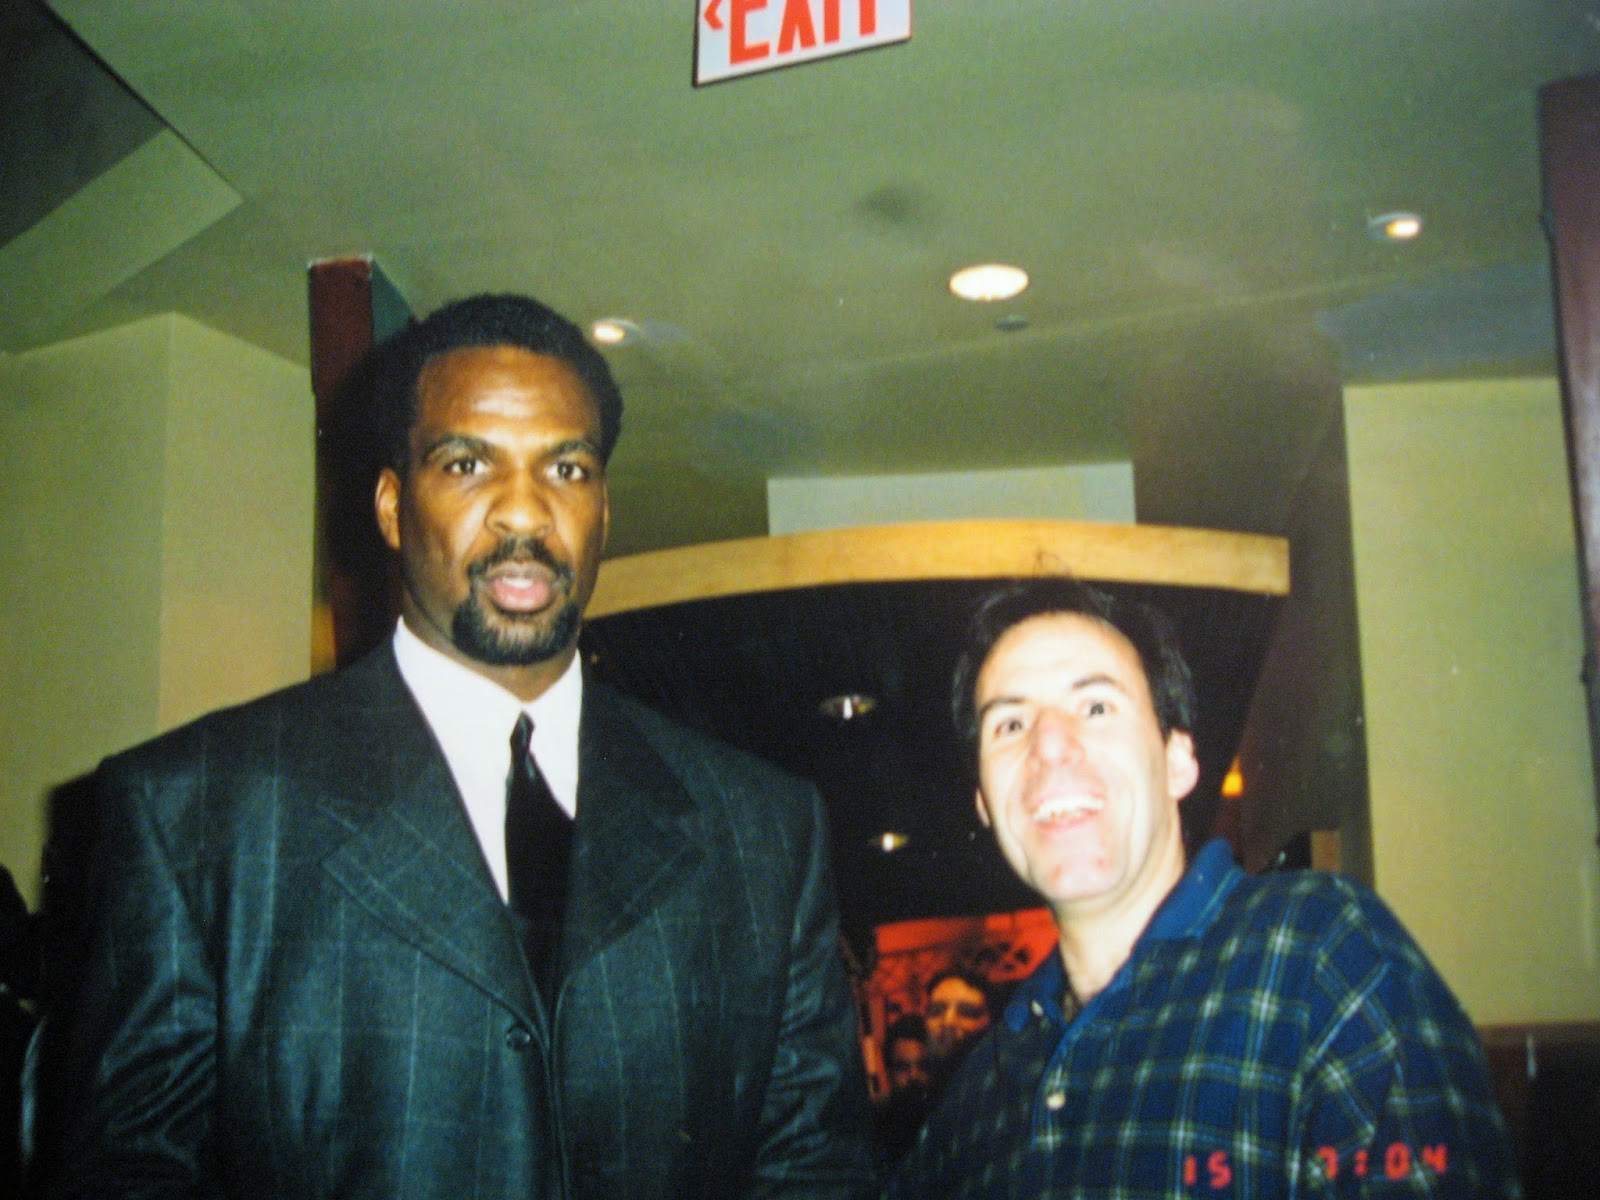 Gigantic Charles Oakley of the New York Knicks